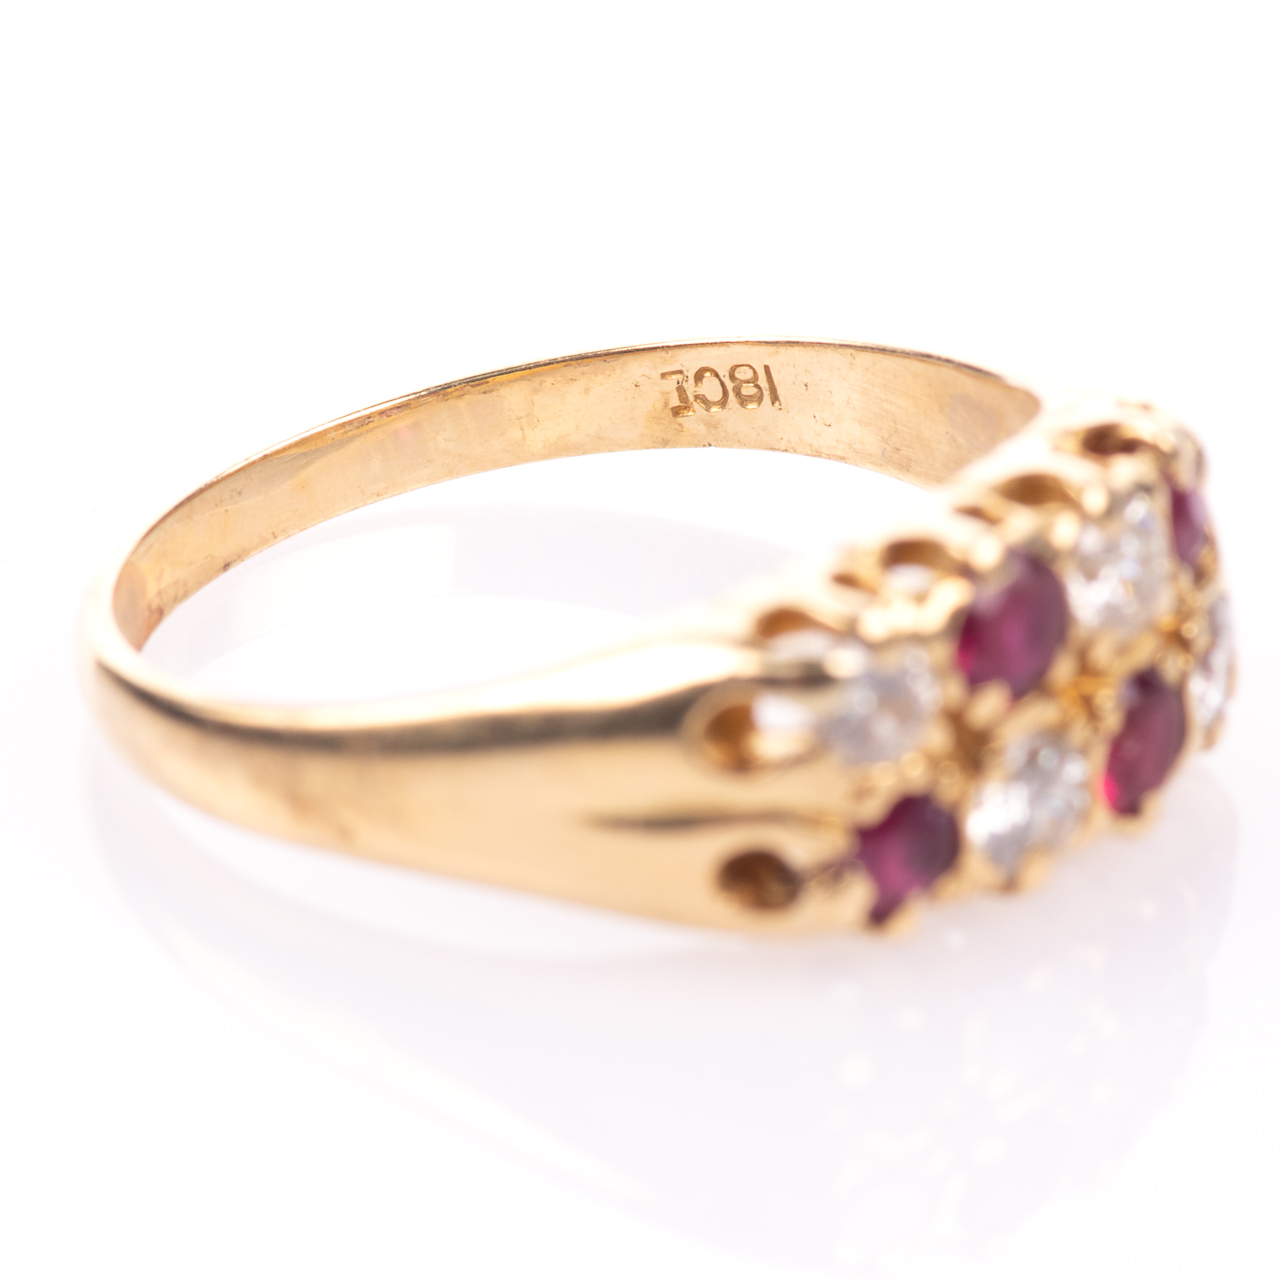 18ct Gold 0.60ct Ruby & 0.50ct Diamond Ring - Image 6 of 7